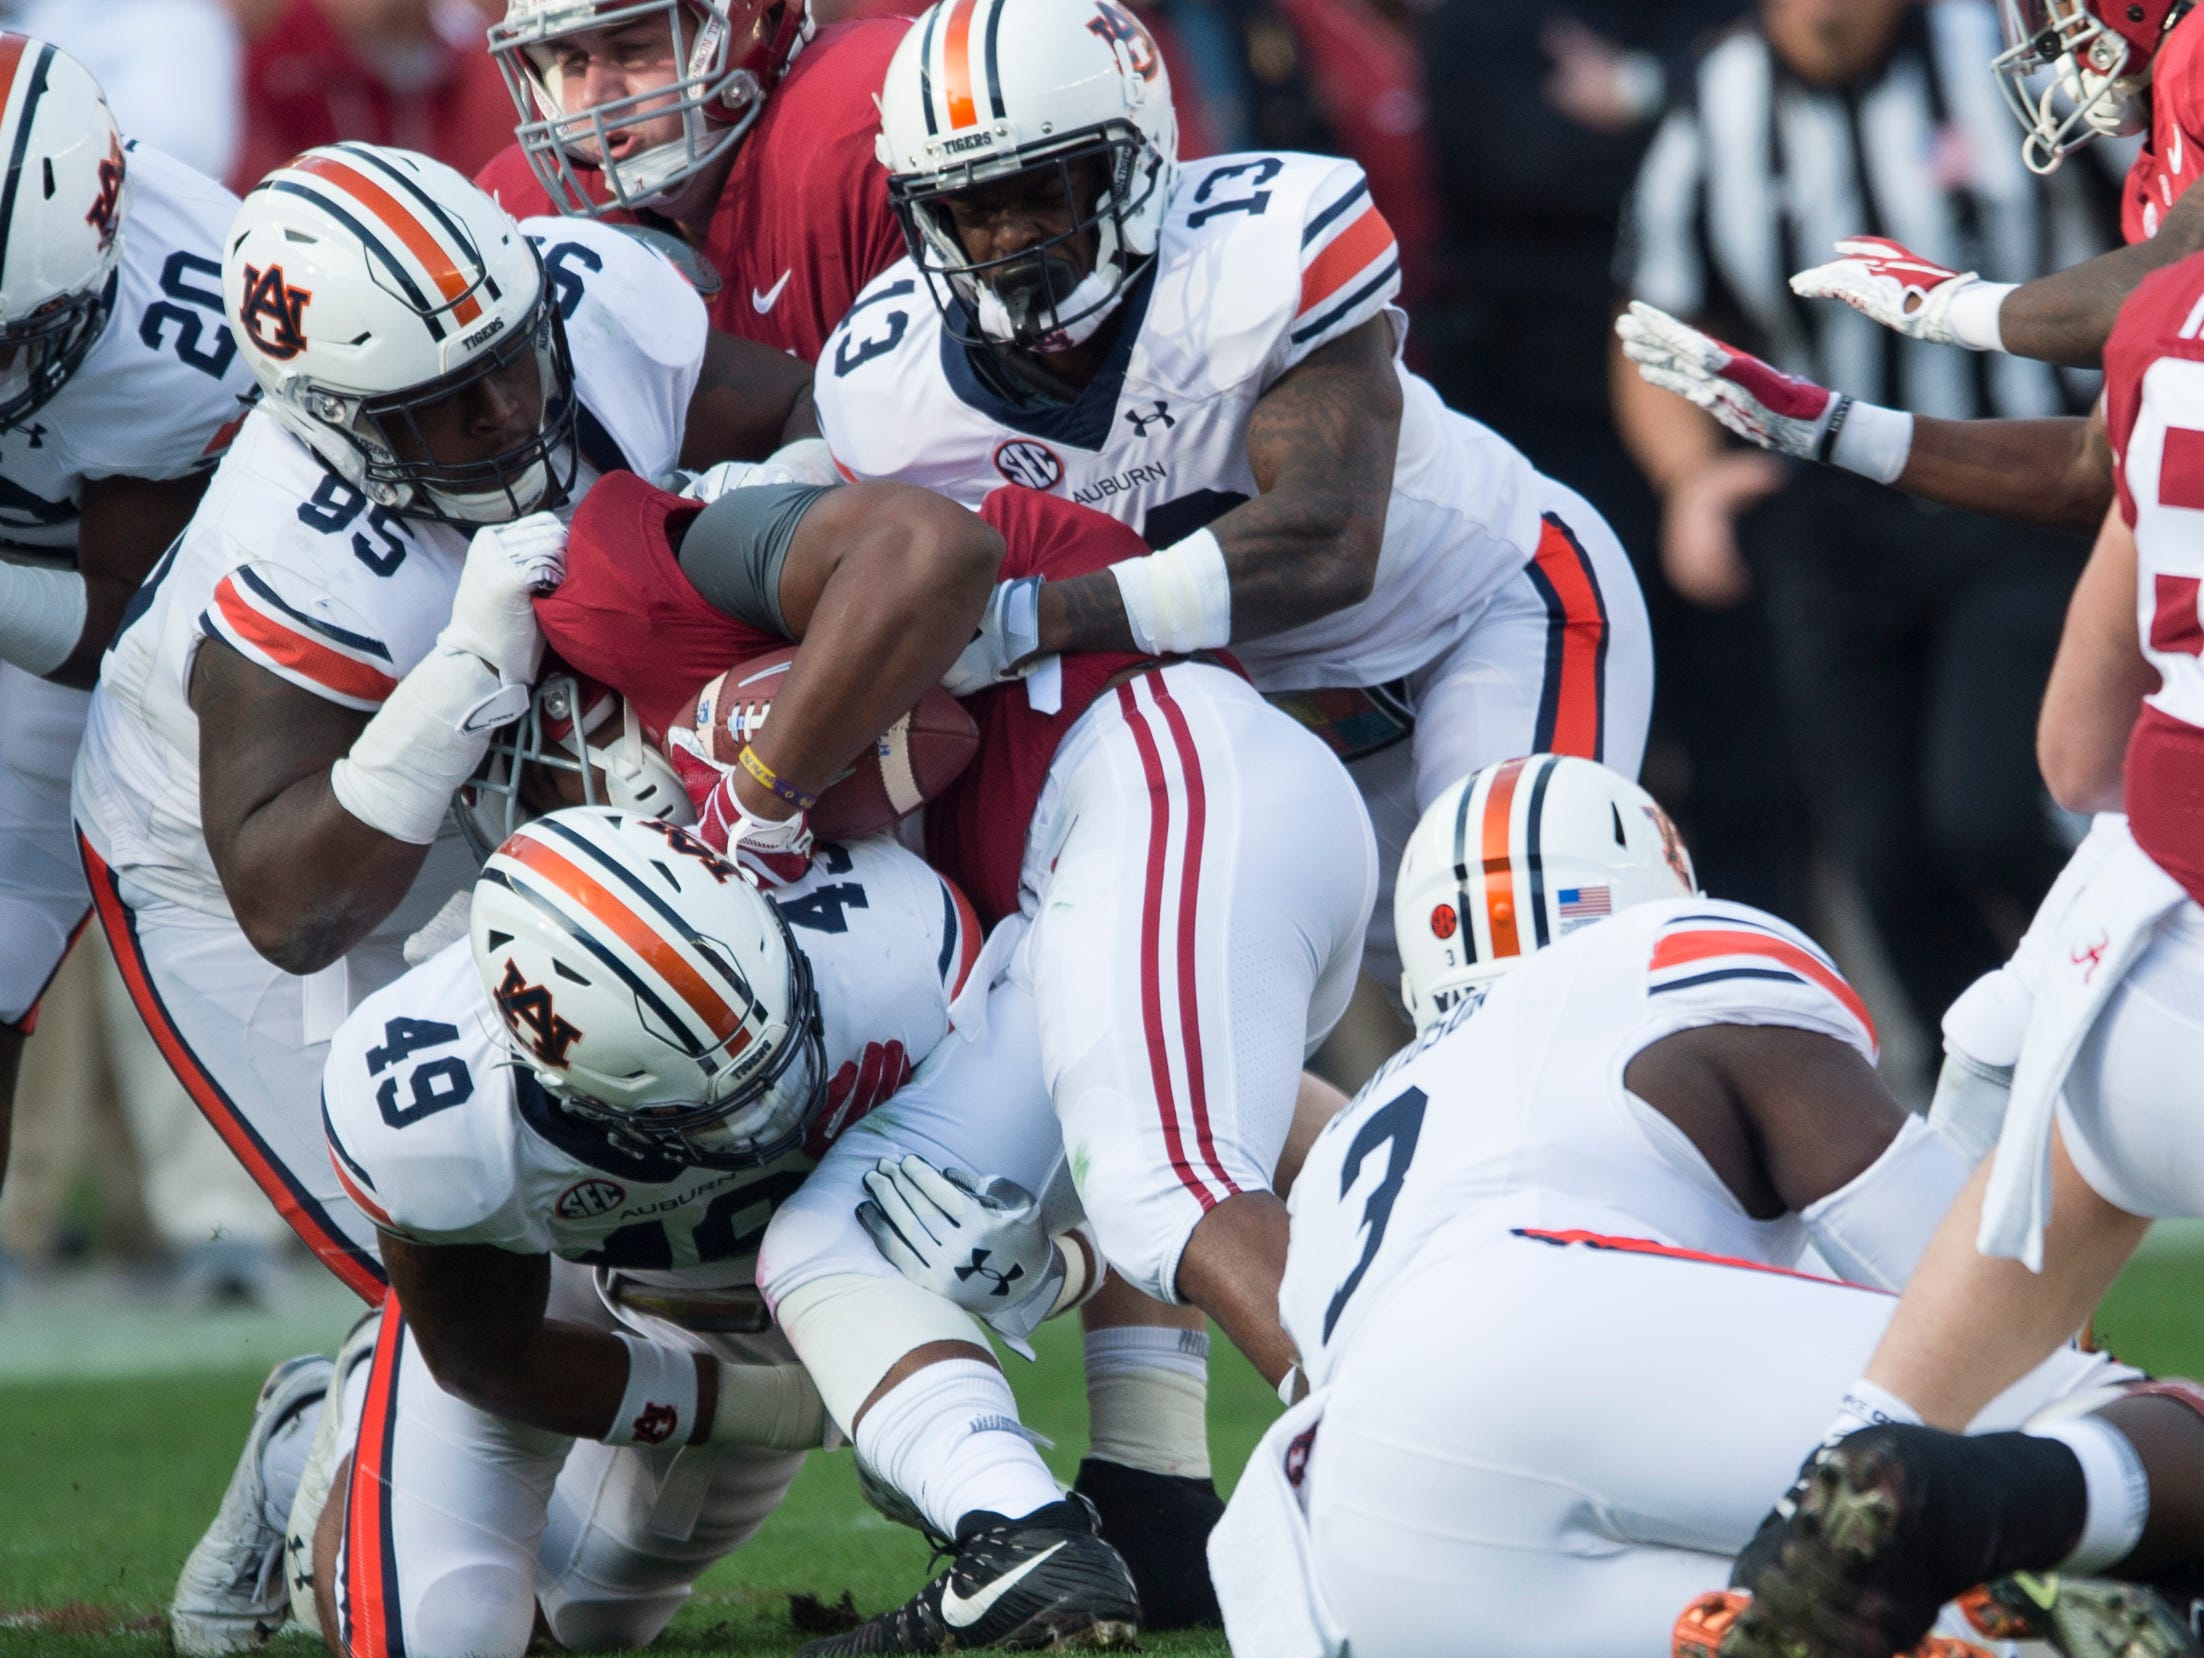 Alabama running back Damien Harris (34) is wrapped up by multiple Auburn defenders during the Iron Bowl at Bryant-Denny Stadium in Tuscaloosa, Ala., on Saturday, Nov. 24, 2018. Alabama leads Auburn 17-14 at halftime.